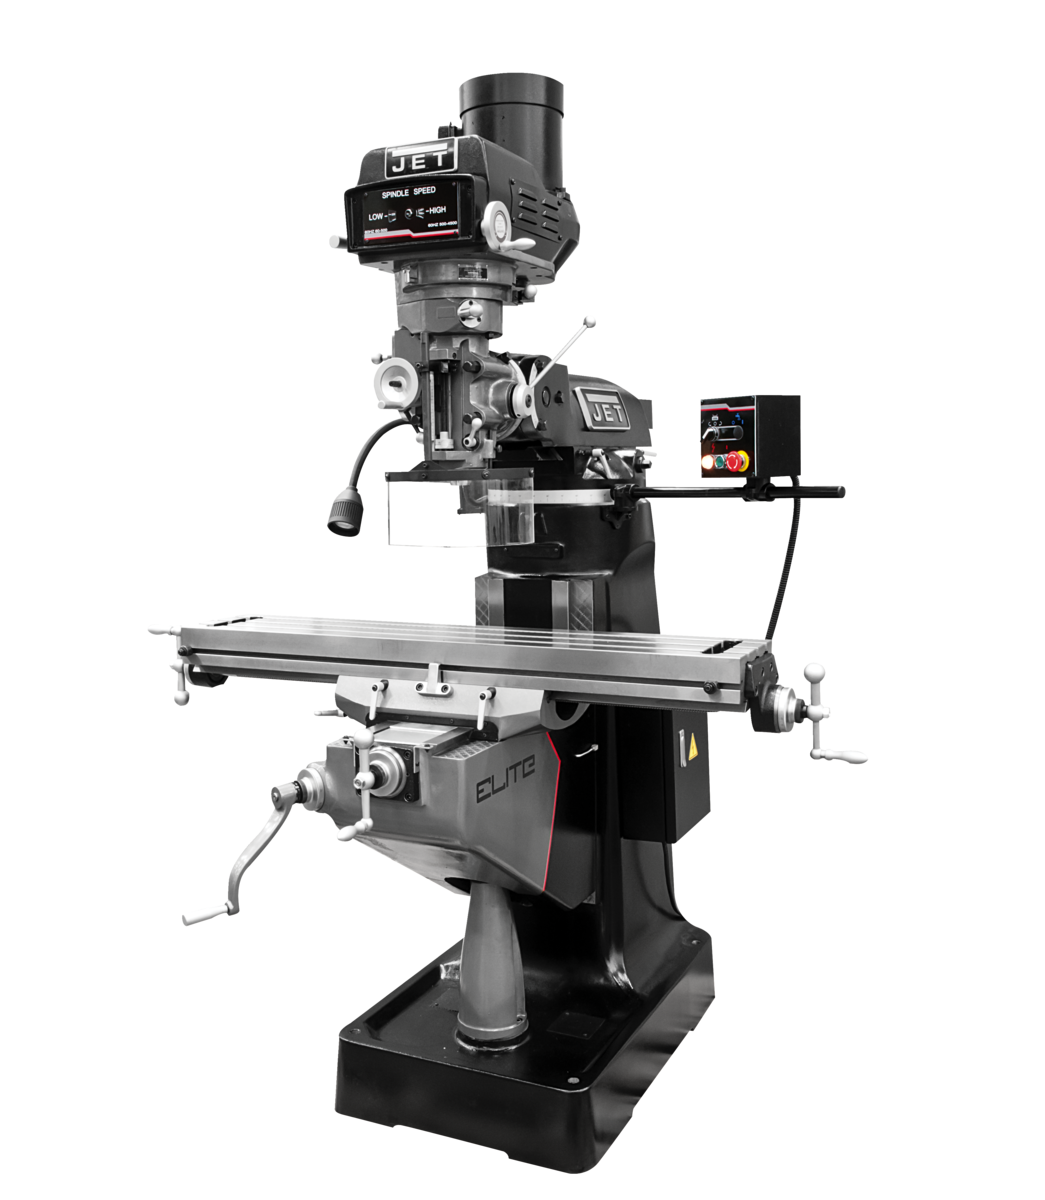 ETM-949 Mill with 3-Axis ACU-RITE 303 (Quill) DRO and Servo X-Axis Powerfeed